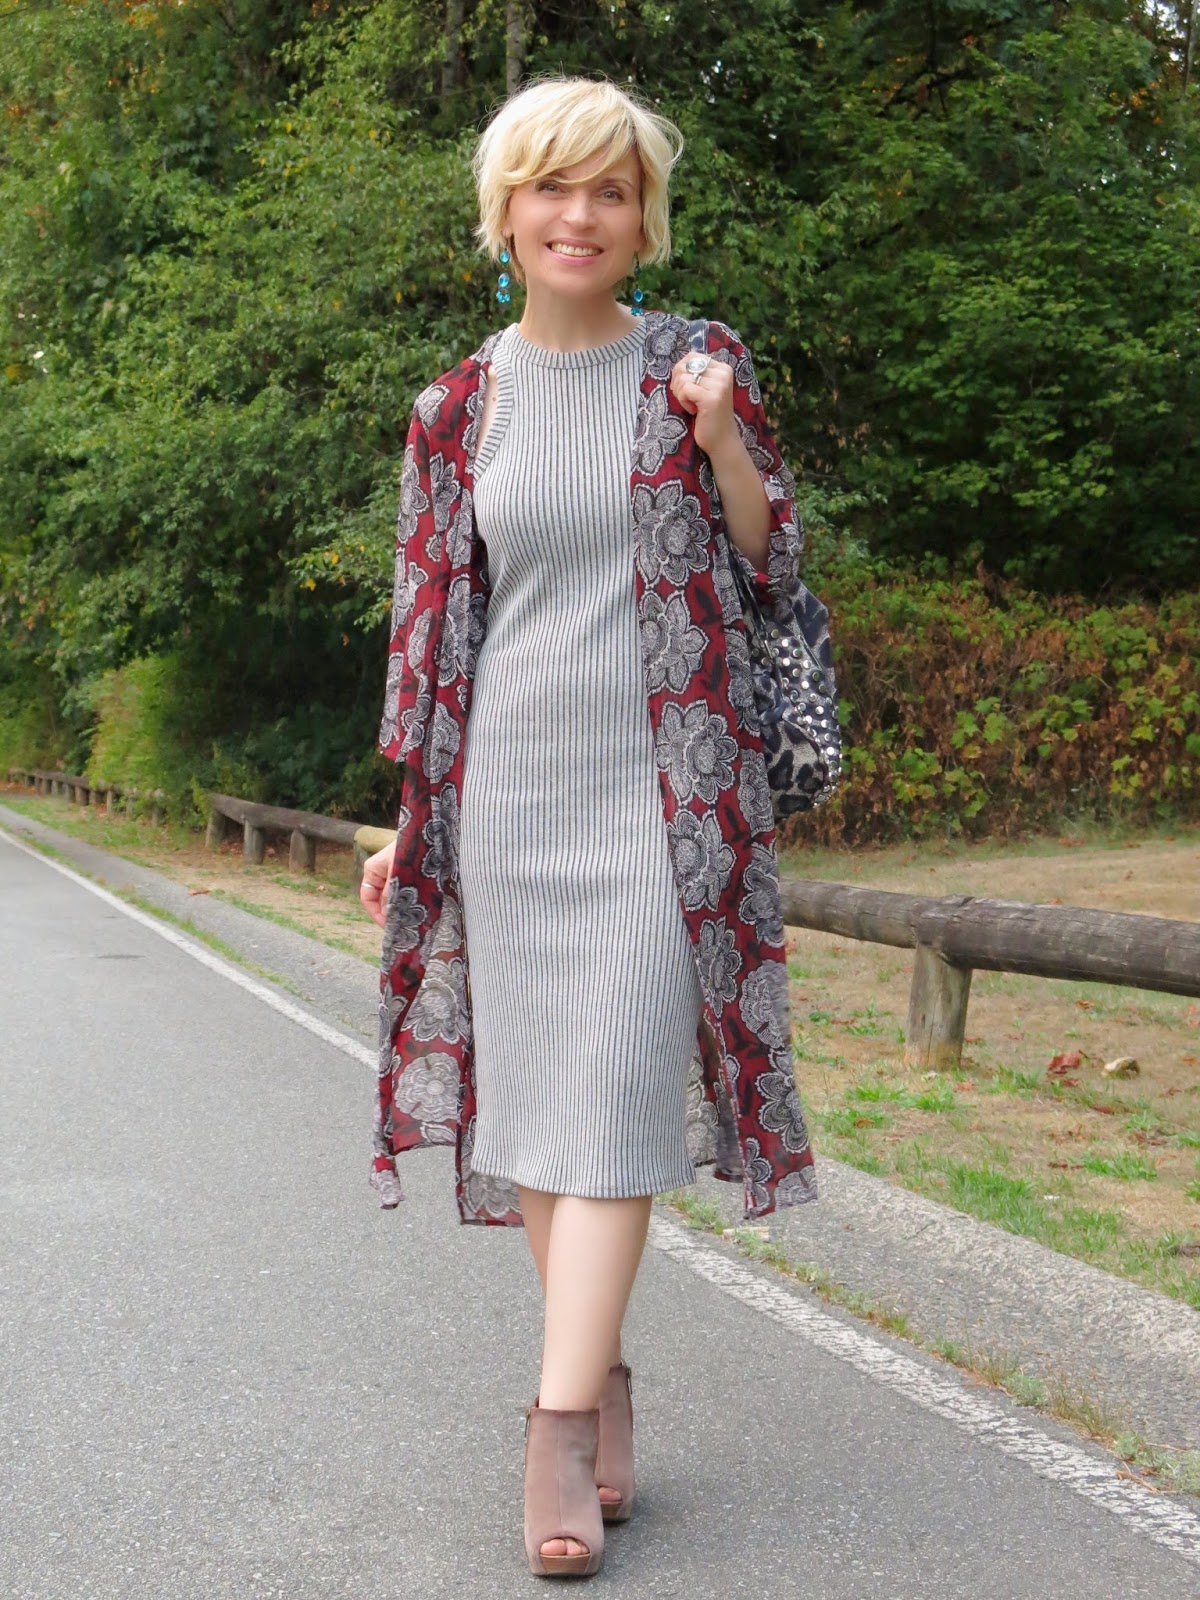 styling a minimalist grey tank dress with a floral kimono and leopard-print backpack